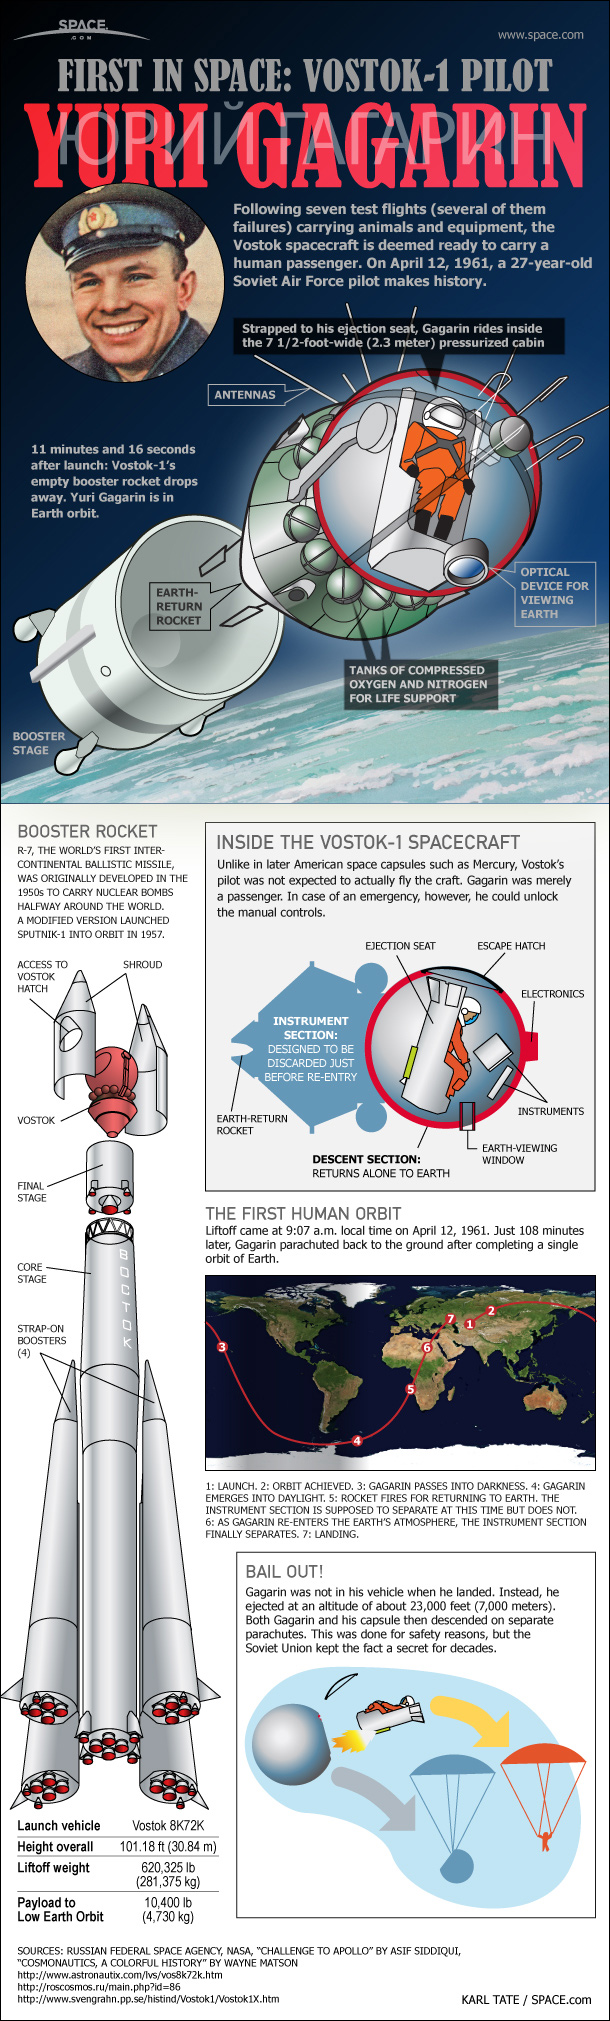 Yuri Gagarin on Vostok 1: How the 1st Human Spaceflight Worked (Infographic)